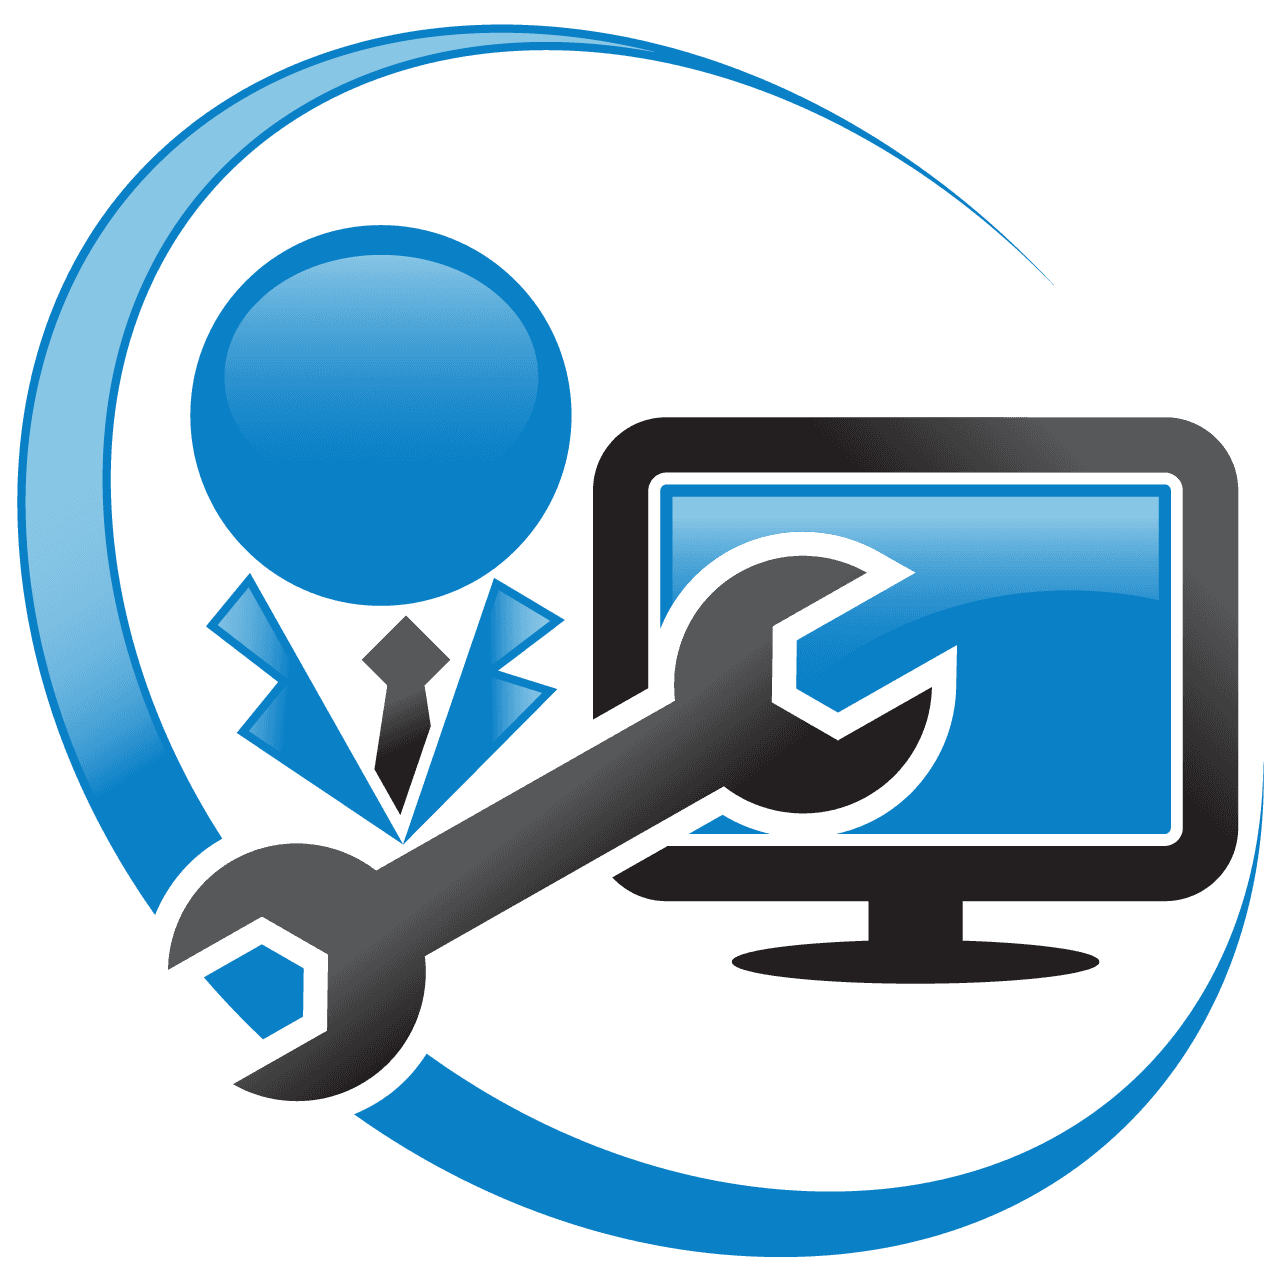 Courtice computing computer and. Fast clipart internet speed